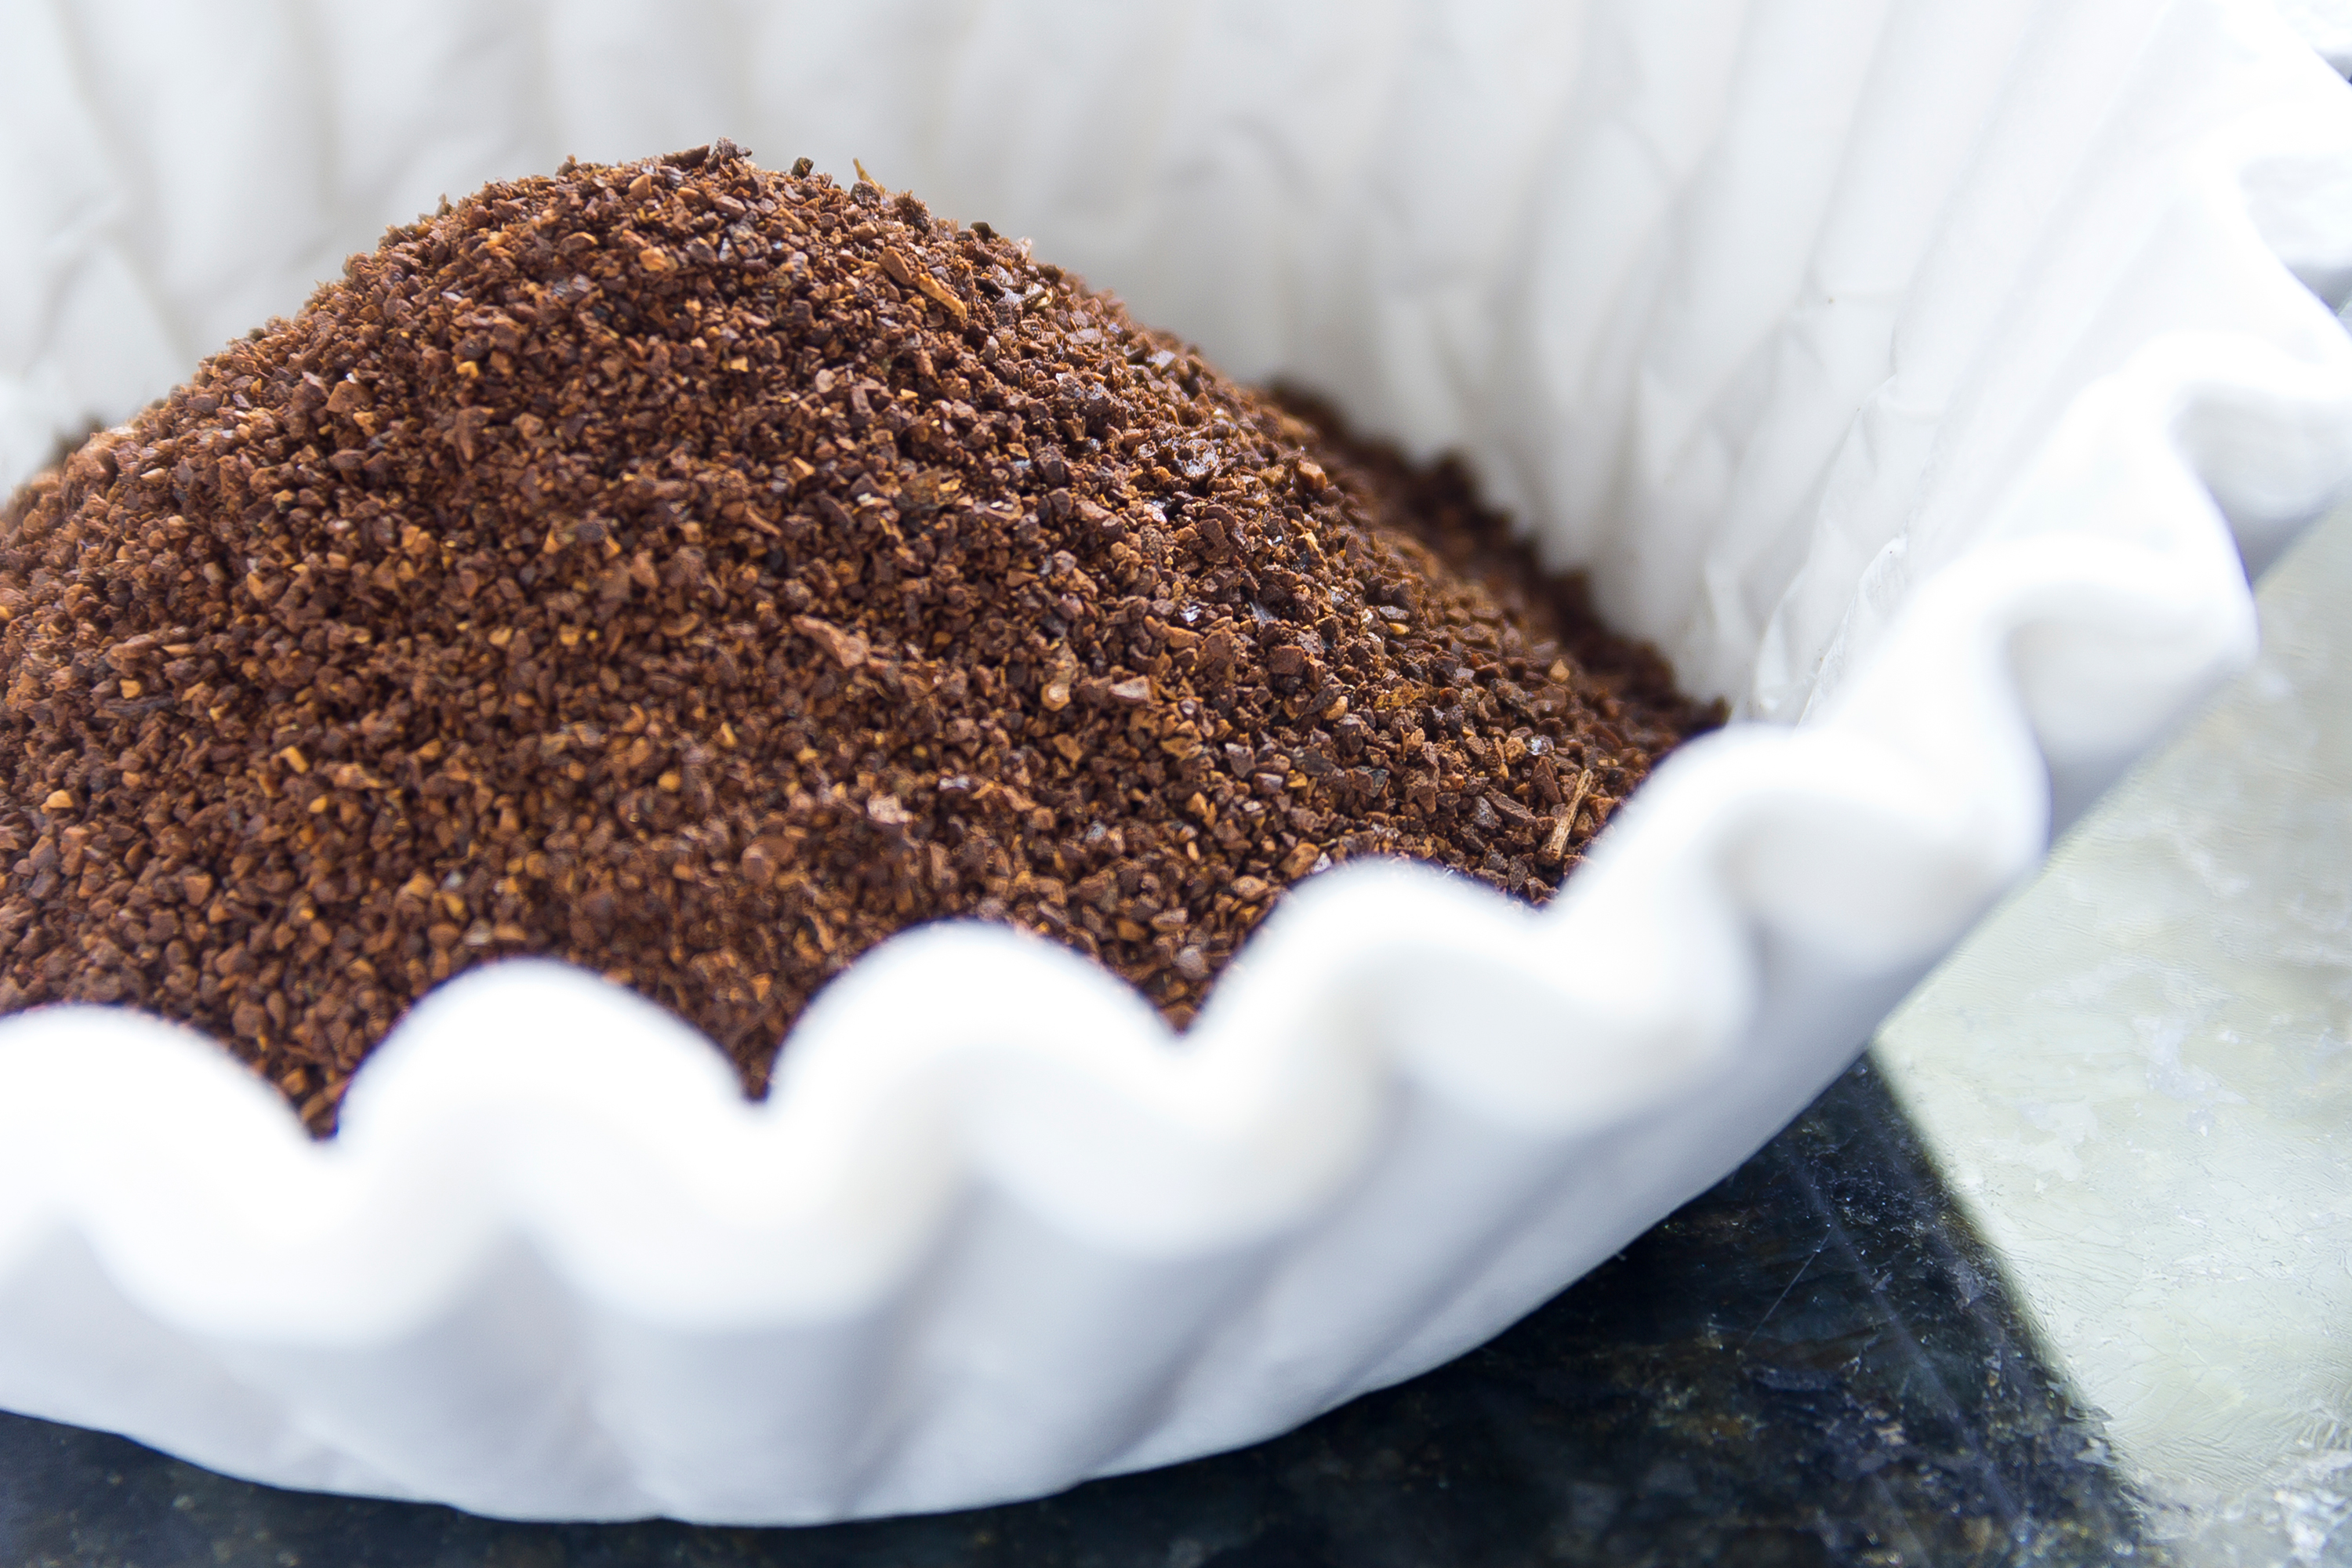 Coffee grounds in a white filter.